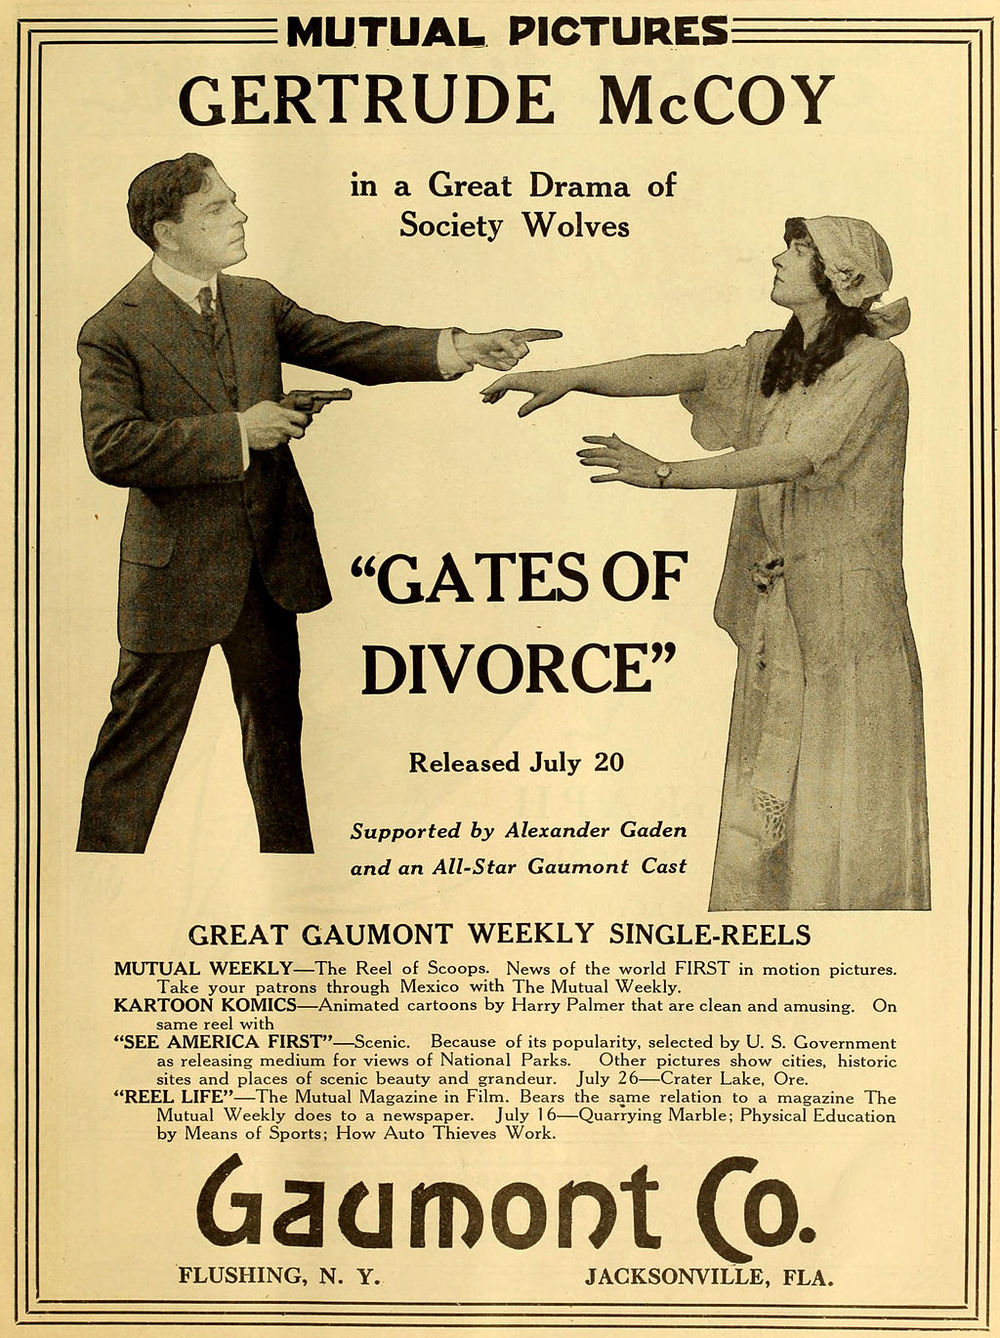 https://upload.wikimedia.org/wikipedia/commons/c/c7/Gates_of_Divorce.jpg